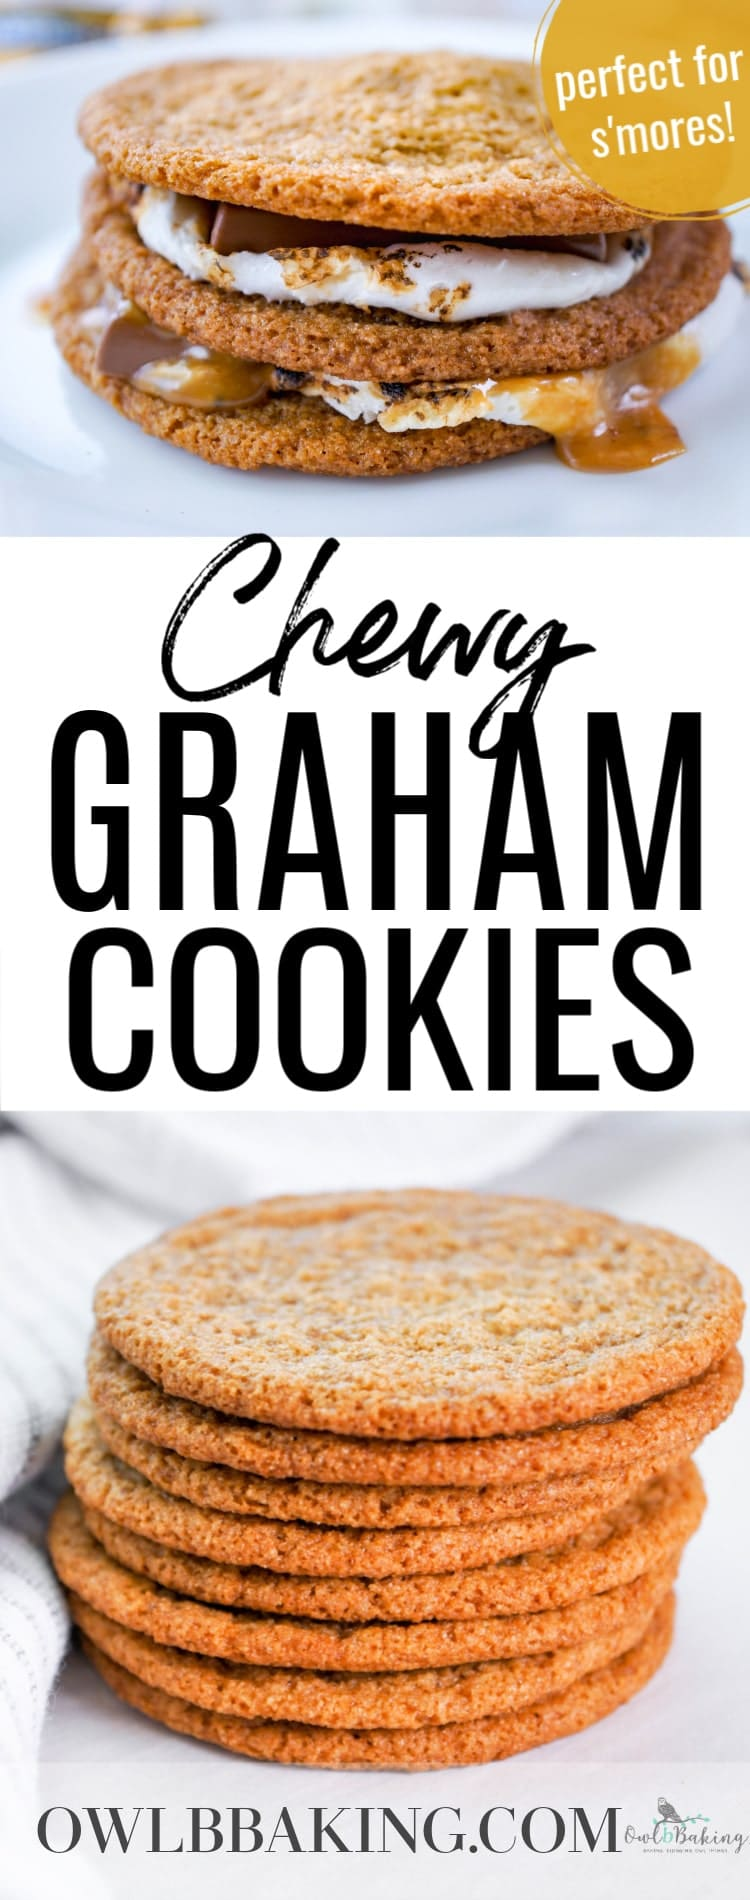 Chewy Graham Cookies